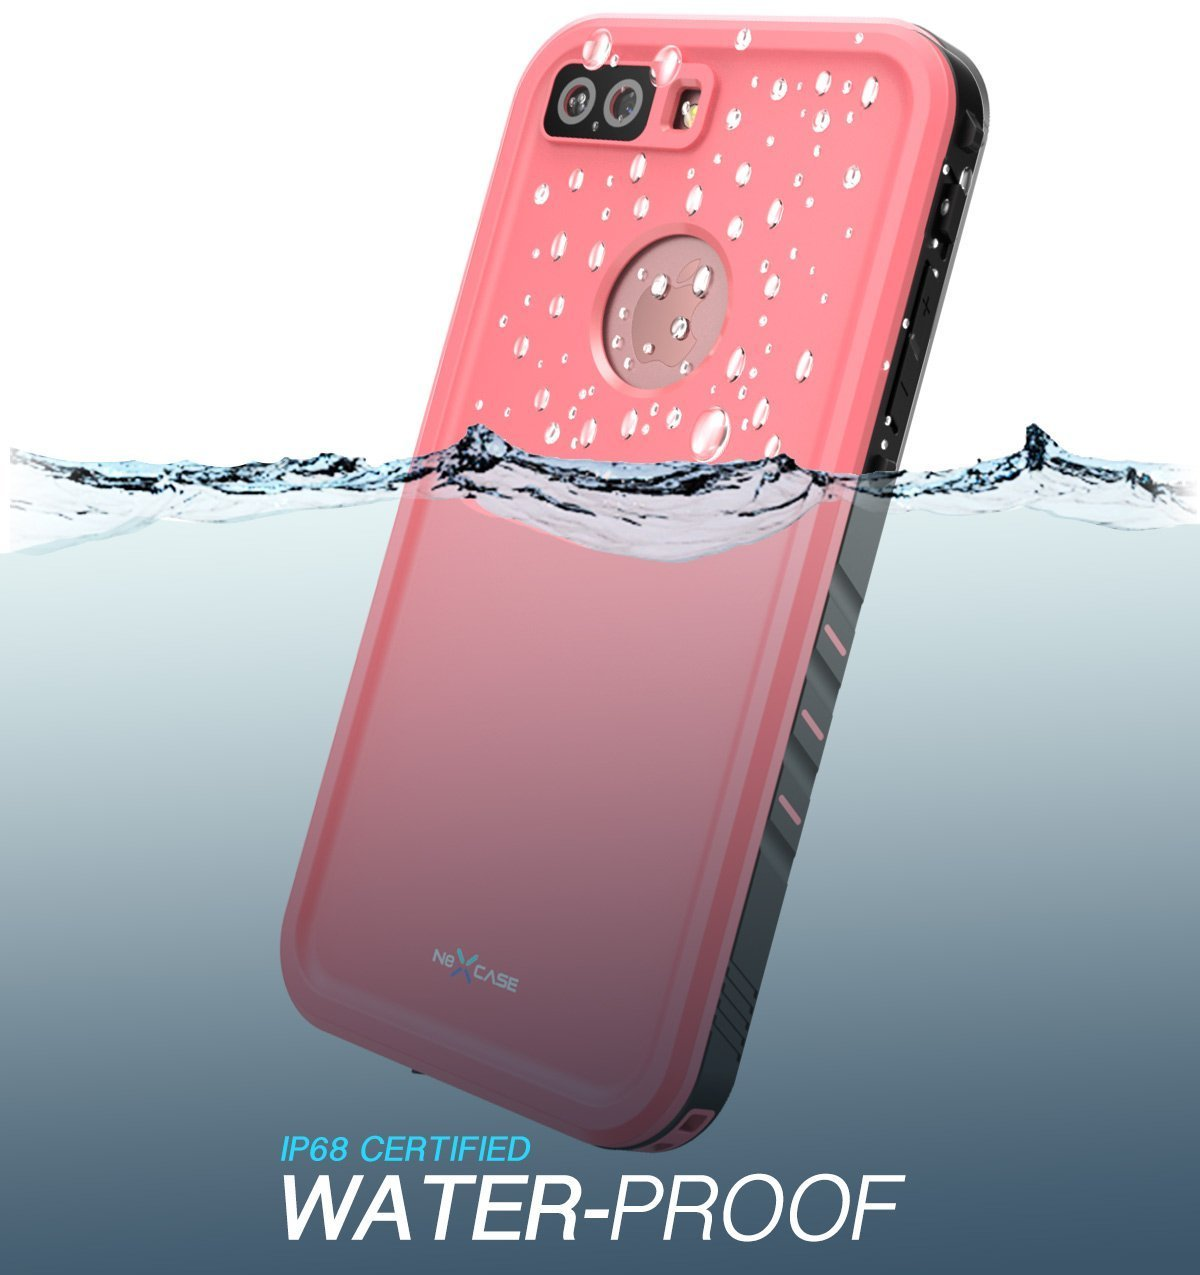 buy online 4761d 16797 iPhone 8 Plus Case, NexCase Waterproof Full-body Rugged Case with Built-in  Screen Protector for Apple iPhone 7 Plus 2016 / iPhone 8 Plus 2017 Release  ...